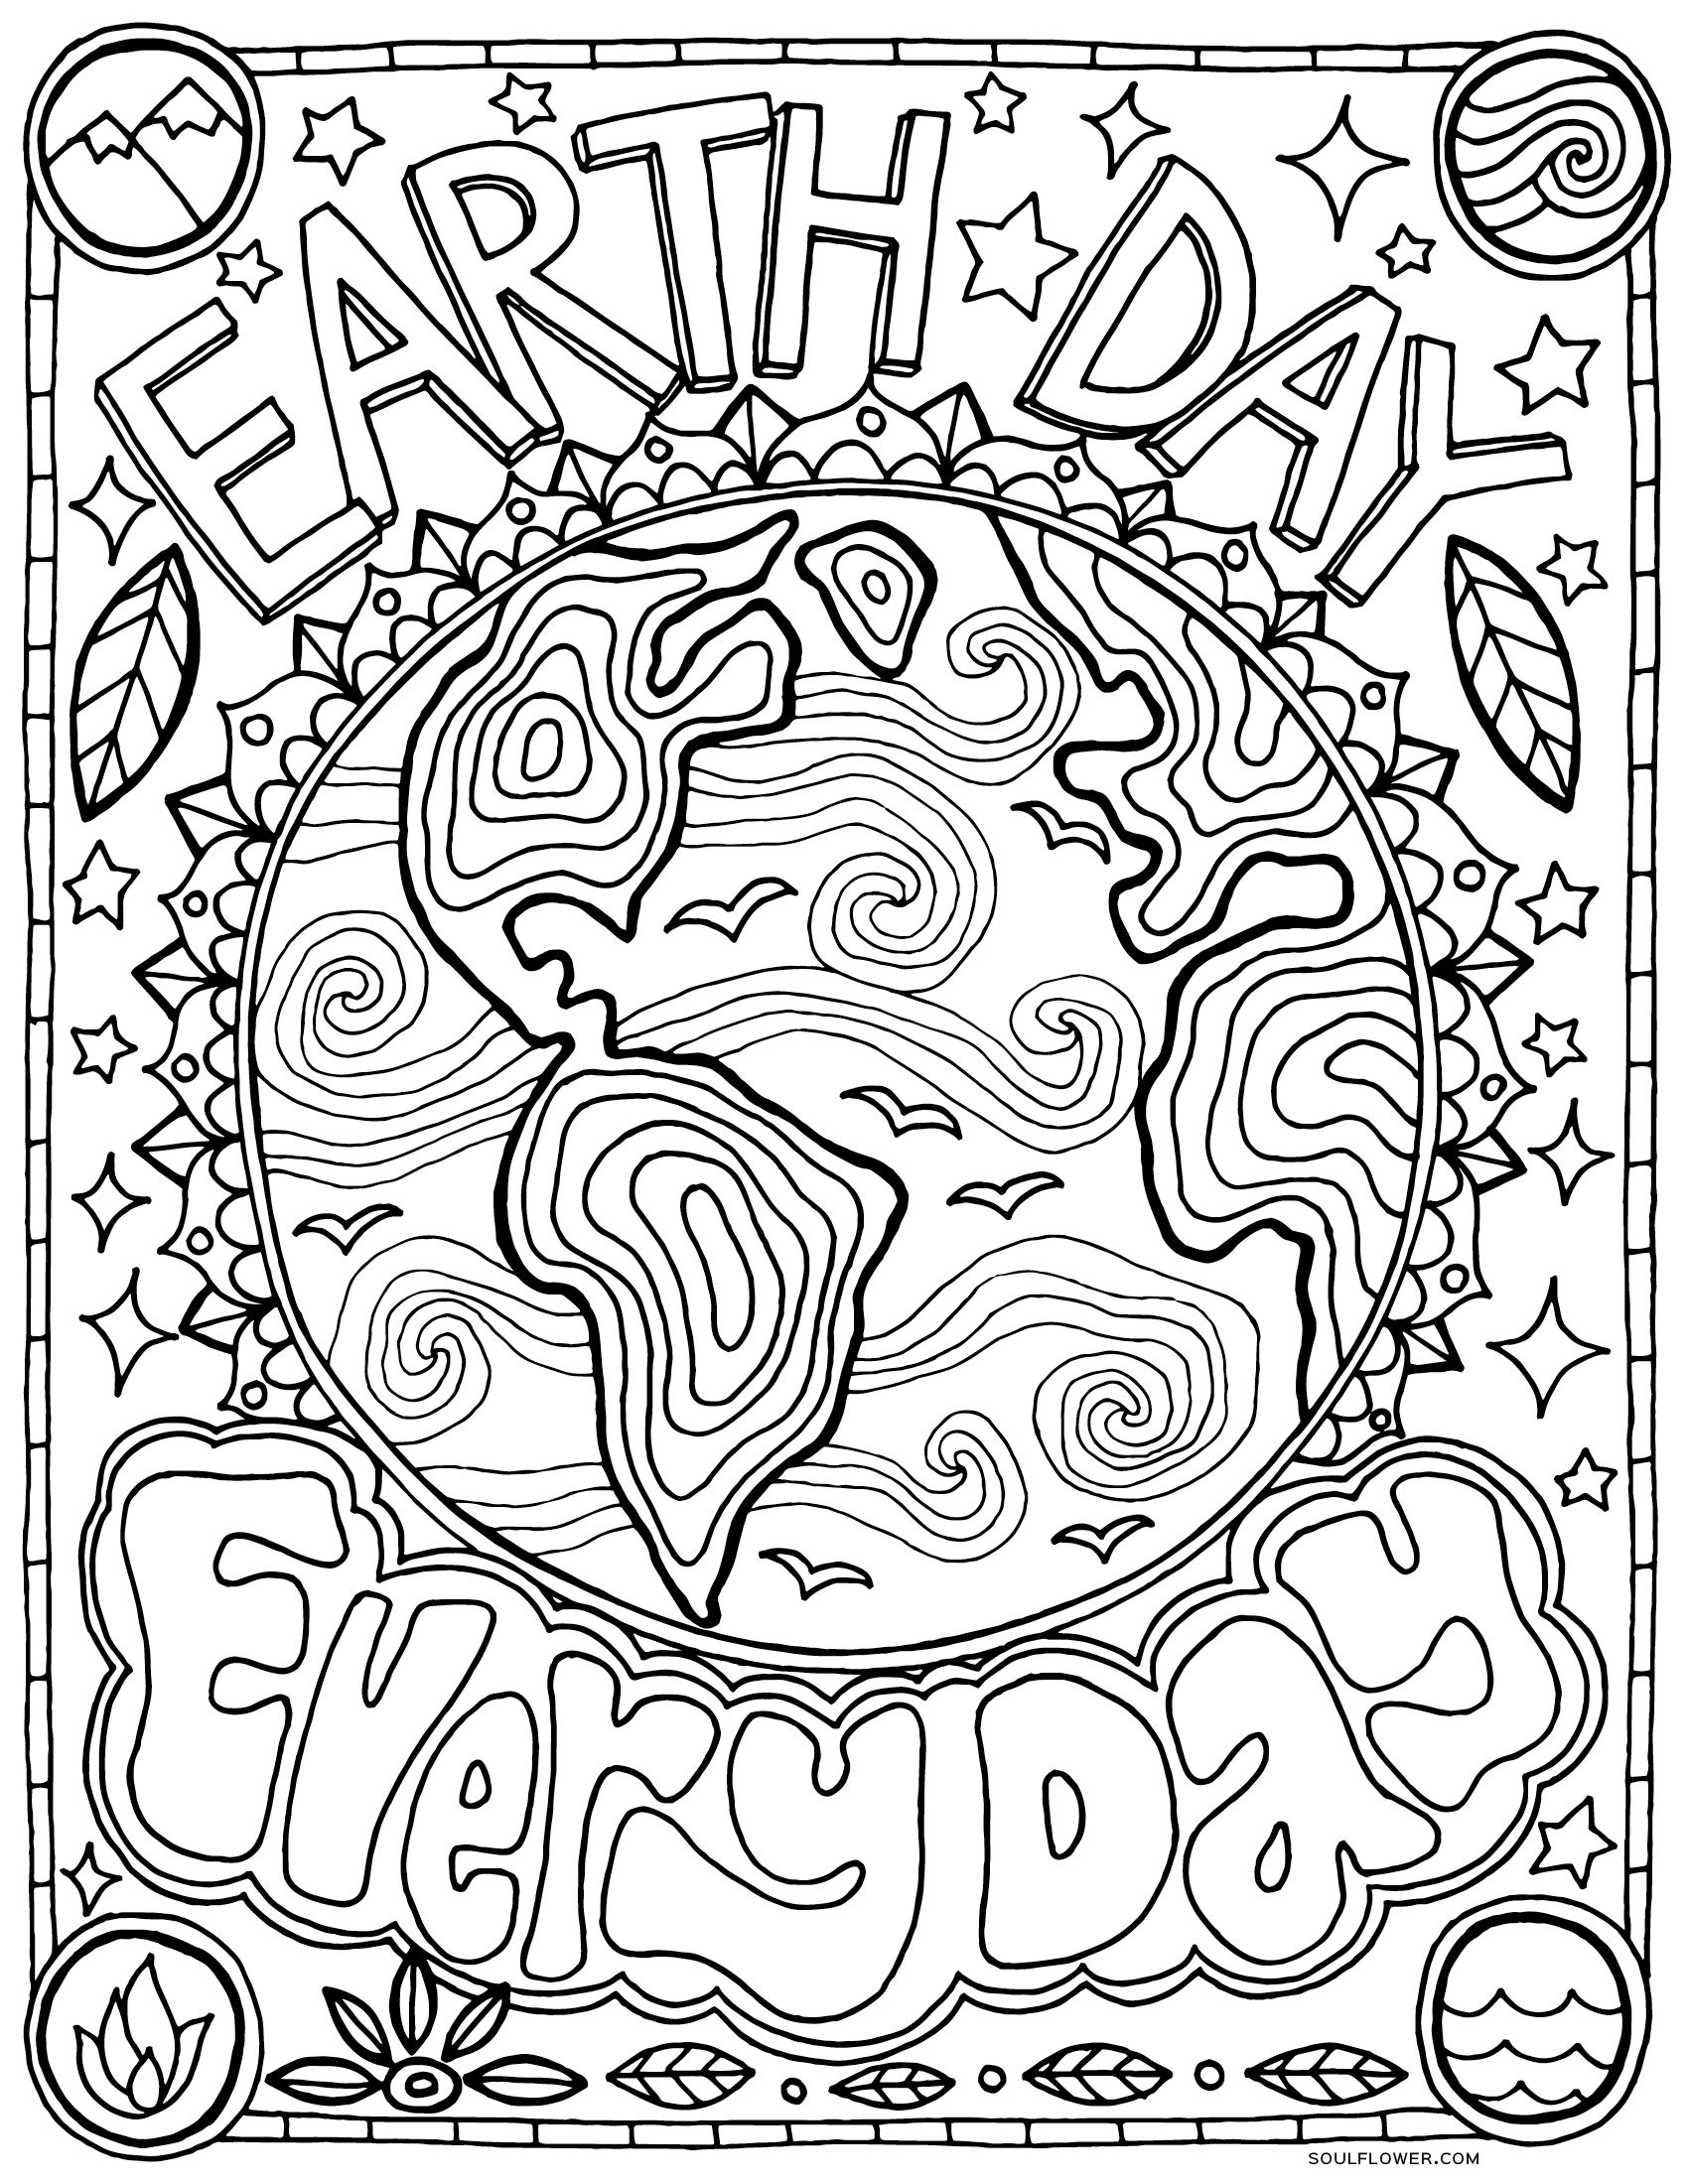 Free Earth Day Coloring Page Earth Day Every Day Earth Day